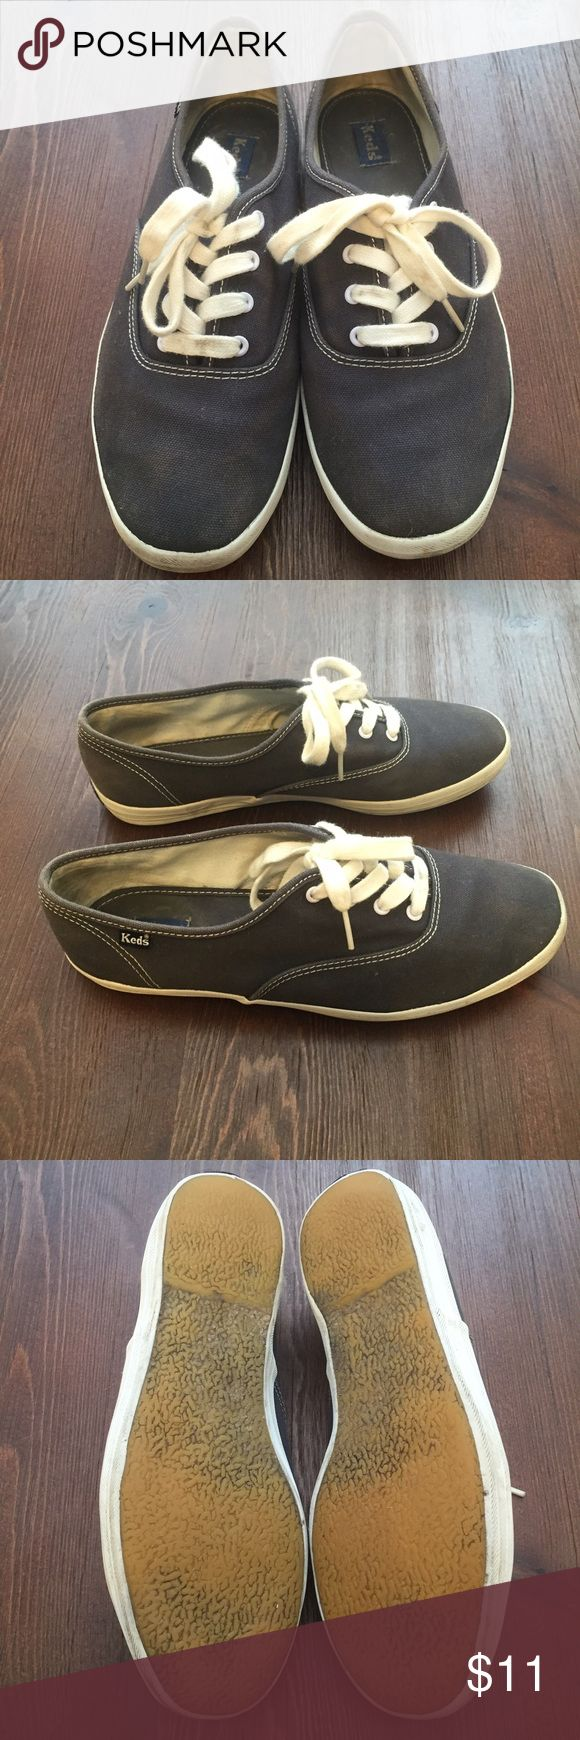 Used navy Keds sneakers Used navy Keds in size 7.5. No trades please but open to offers. More pics available upon request. Keds Shoes Sneakers